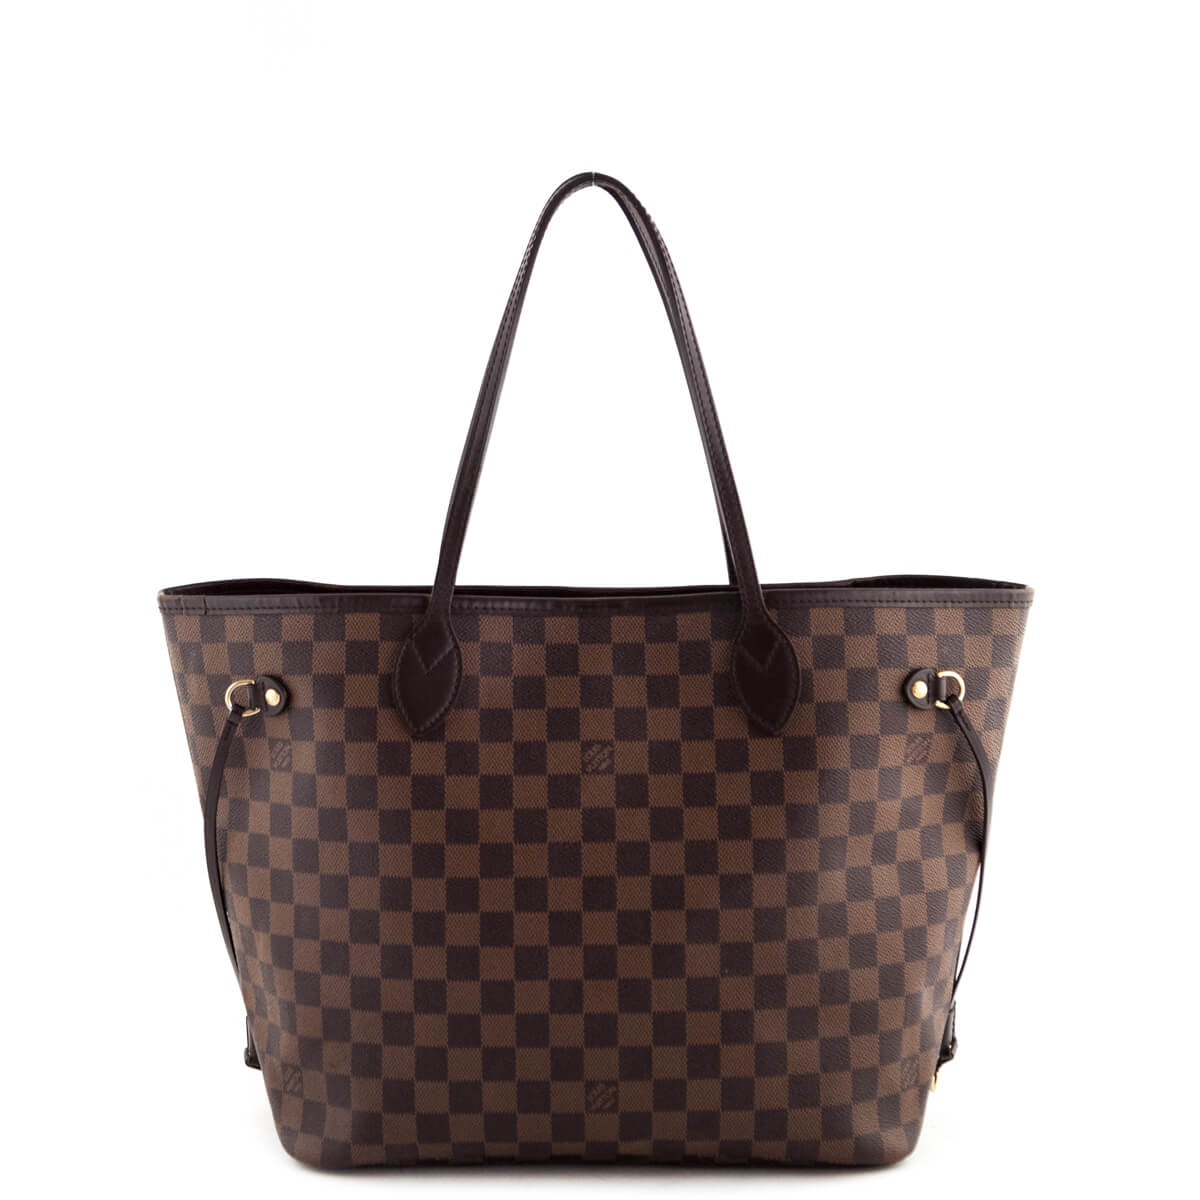 Louis Vuitton Damier Ebene Neverfull MM - LOVE that BAG - Preowned  Authentic Designer Handbags ... d41531b19b